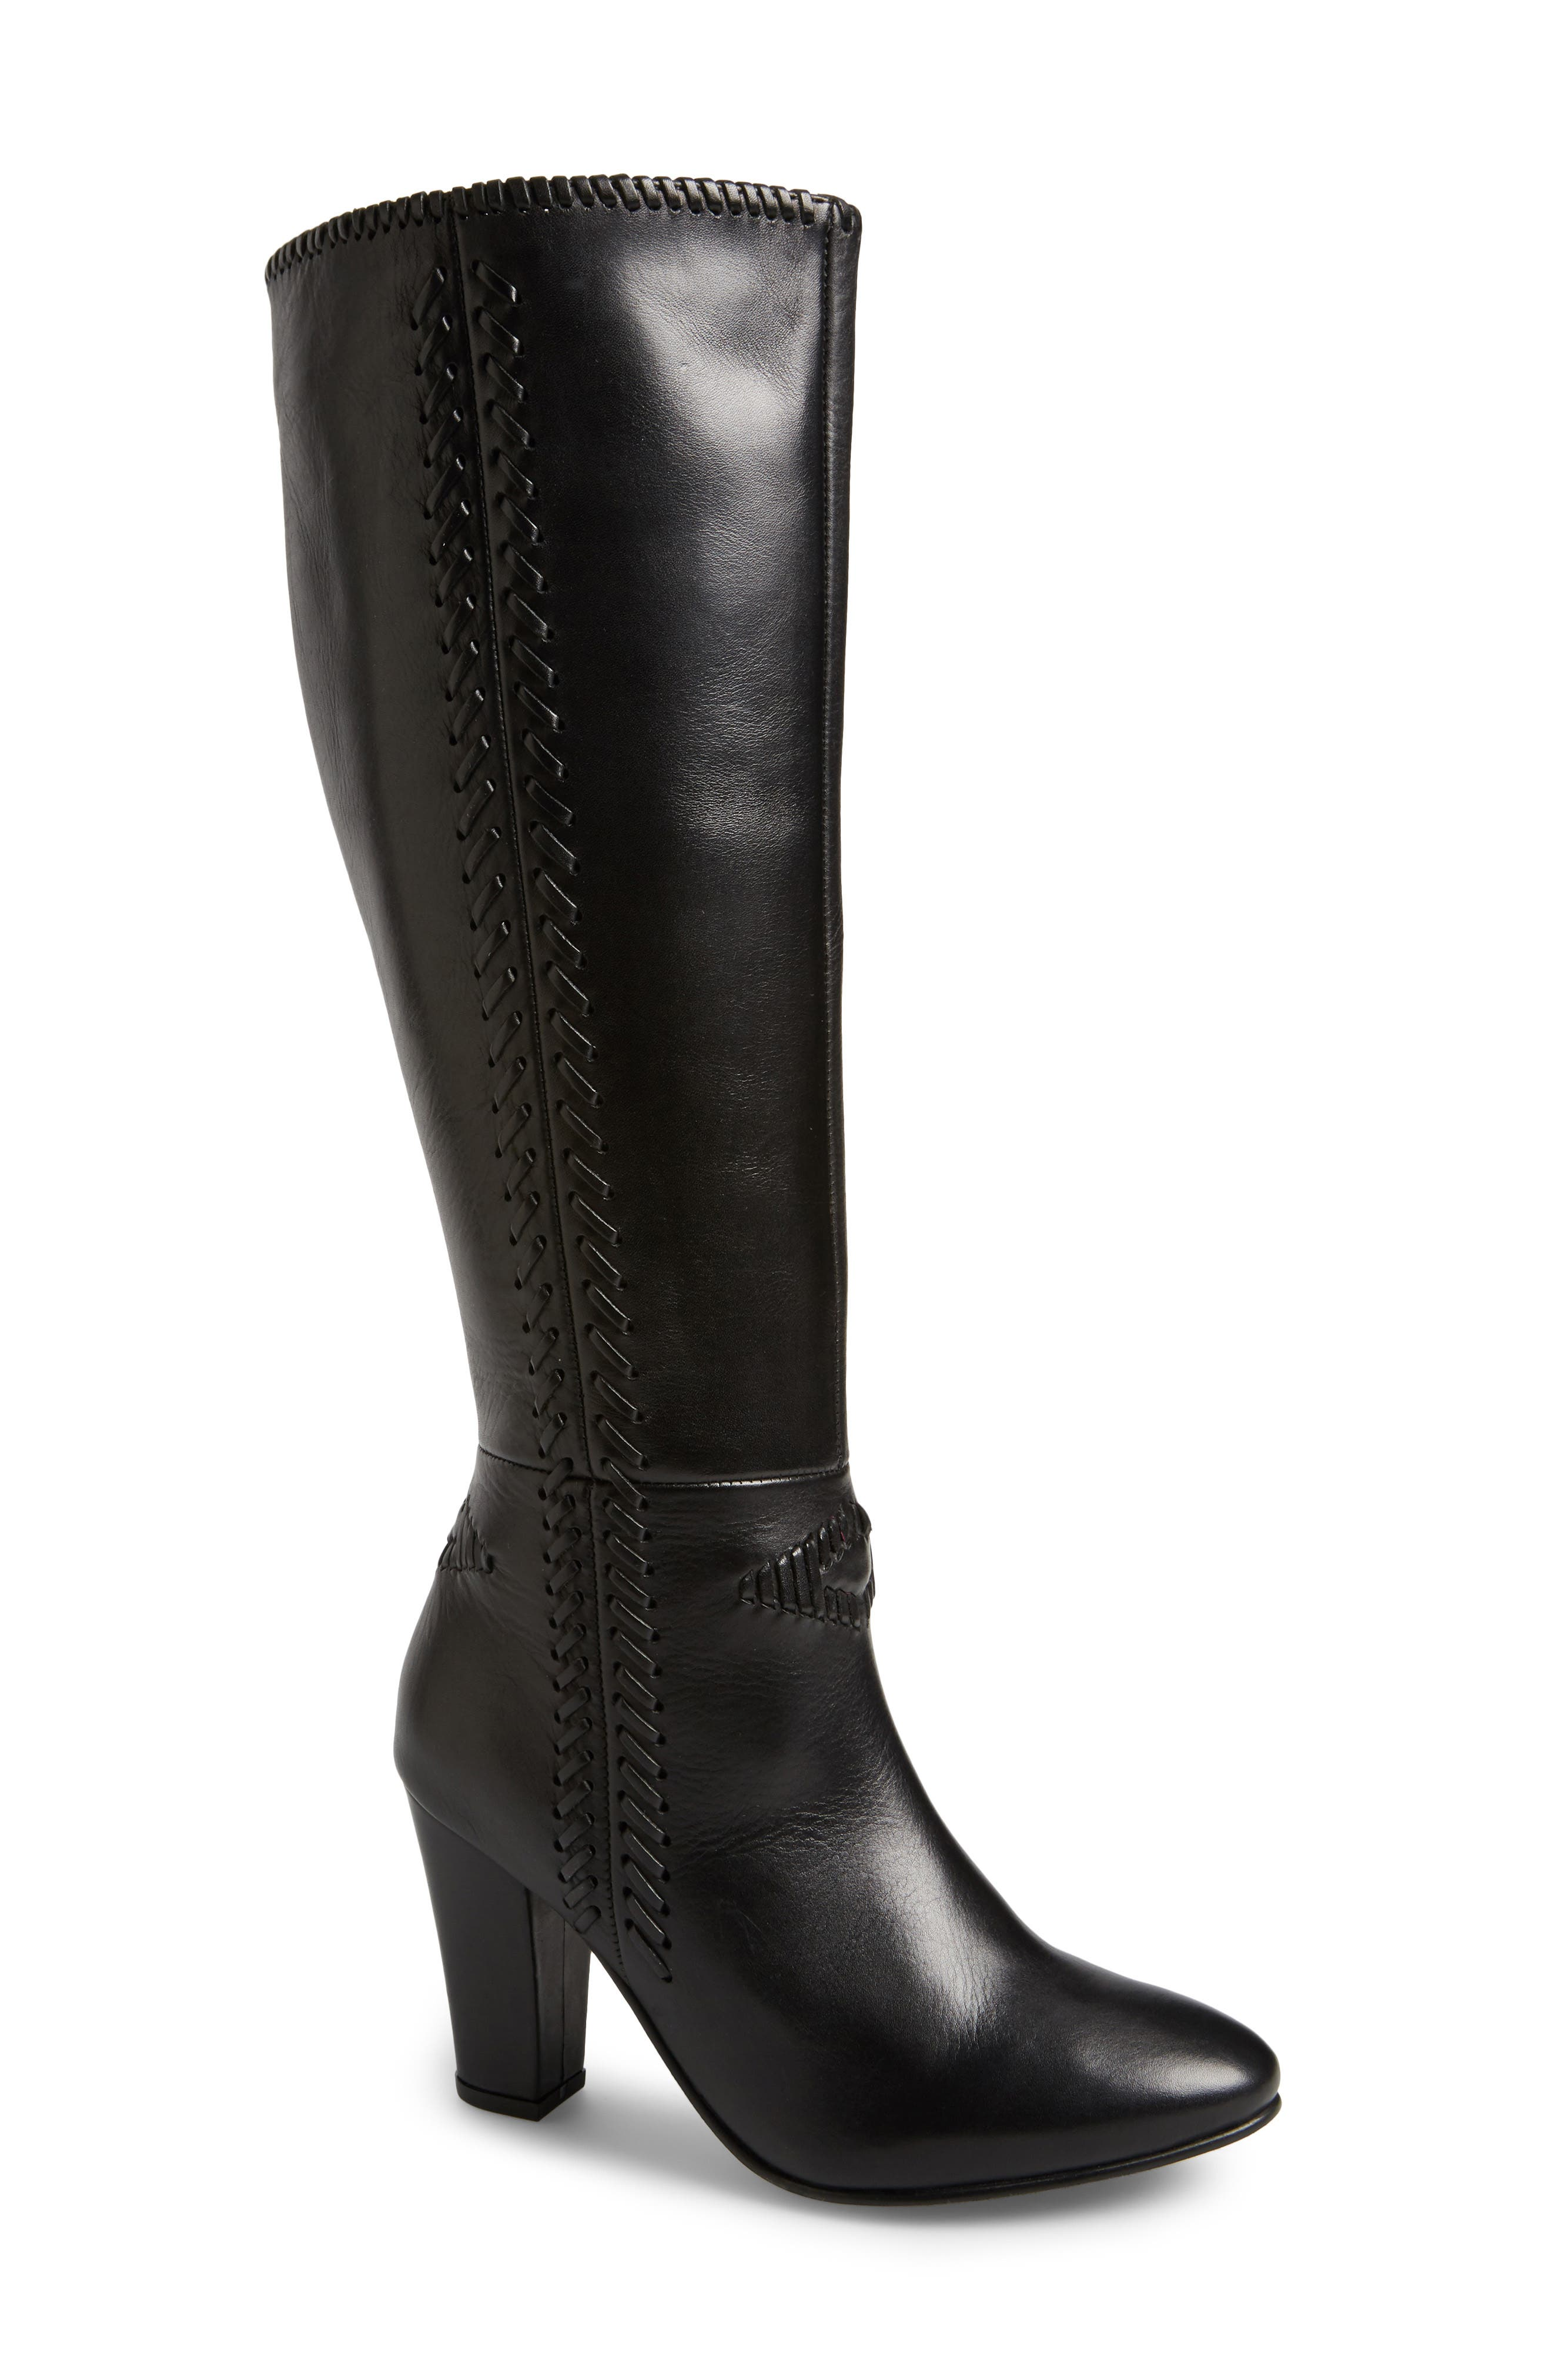 Reserved Knee High Boot,                             Main thumbnail 1, color,                             001